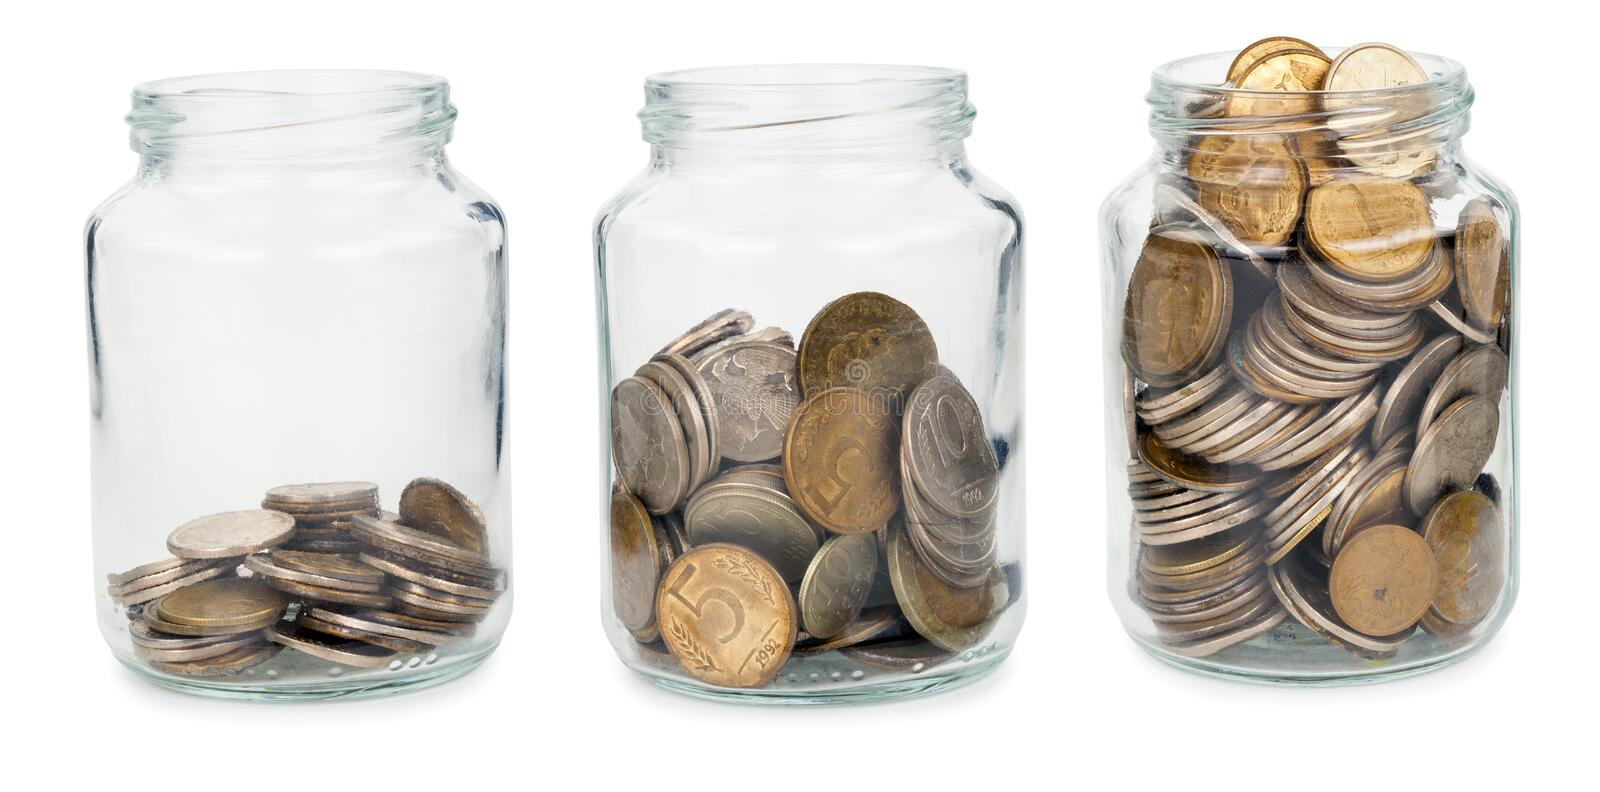 Glass jars with coins. On white background royalty free stock photos